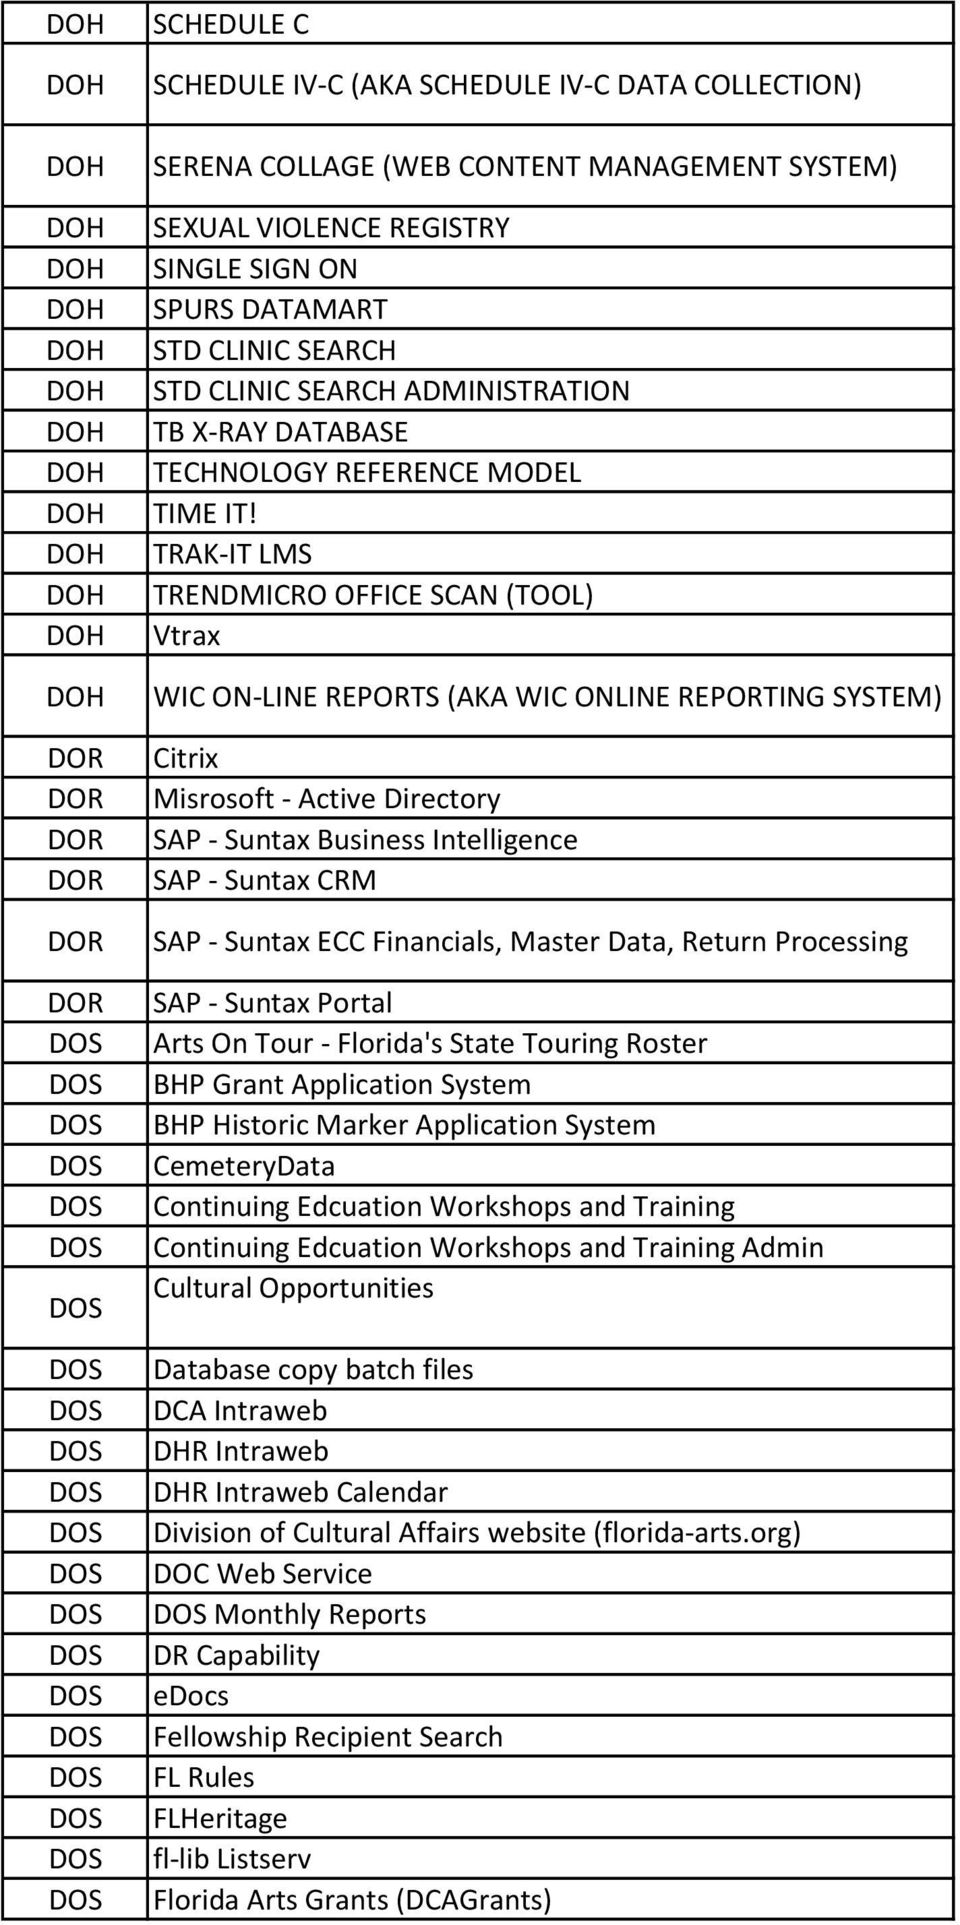 TRAK-IT LMS TRENDMICRO OFFICE SCAN (TOOL) Vtrax WIC ON-LINE REPORTS (AKA WIC ONLINE REPORTING SYSTEM) Citrix Misrosoft - Active Directory SAP - Suntax Business Intelligence SAP - Suntax CRM SAP -